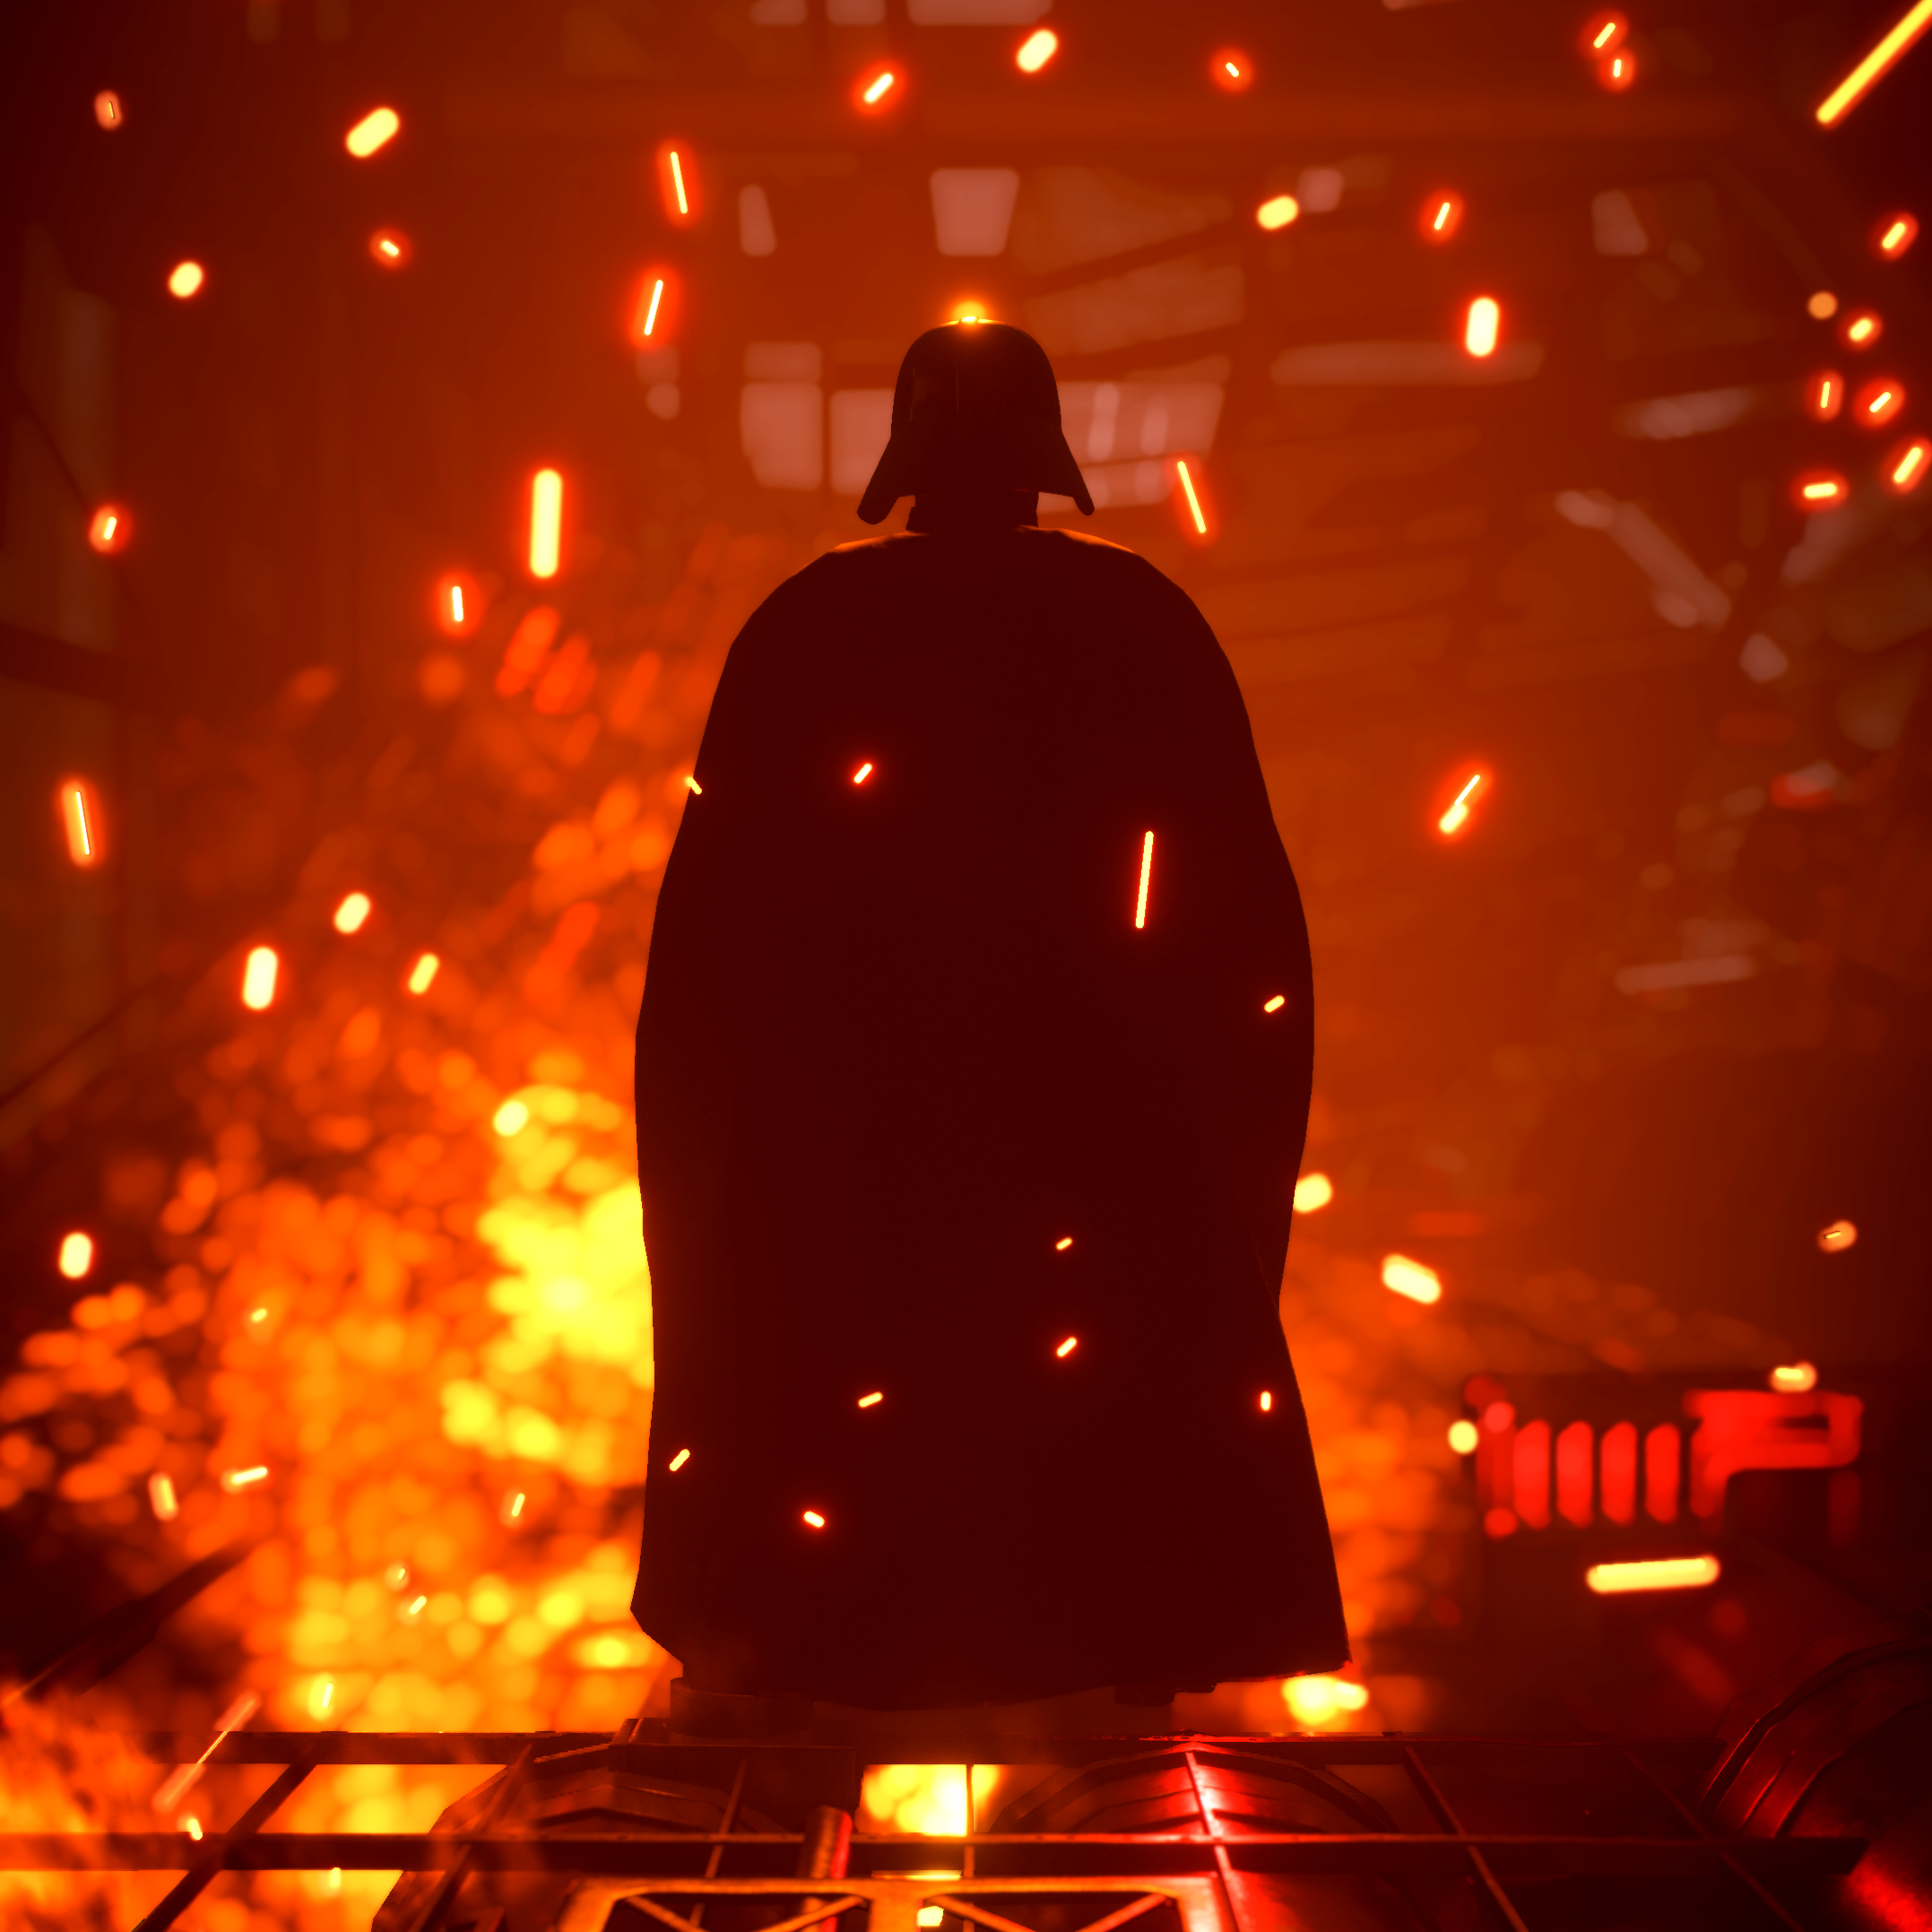 This really cool Darth Vader wallpaper i found Thought Ill 2155x2155